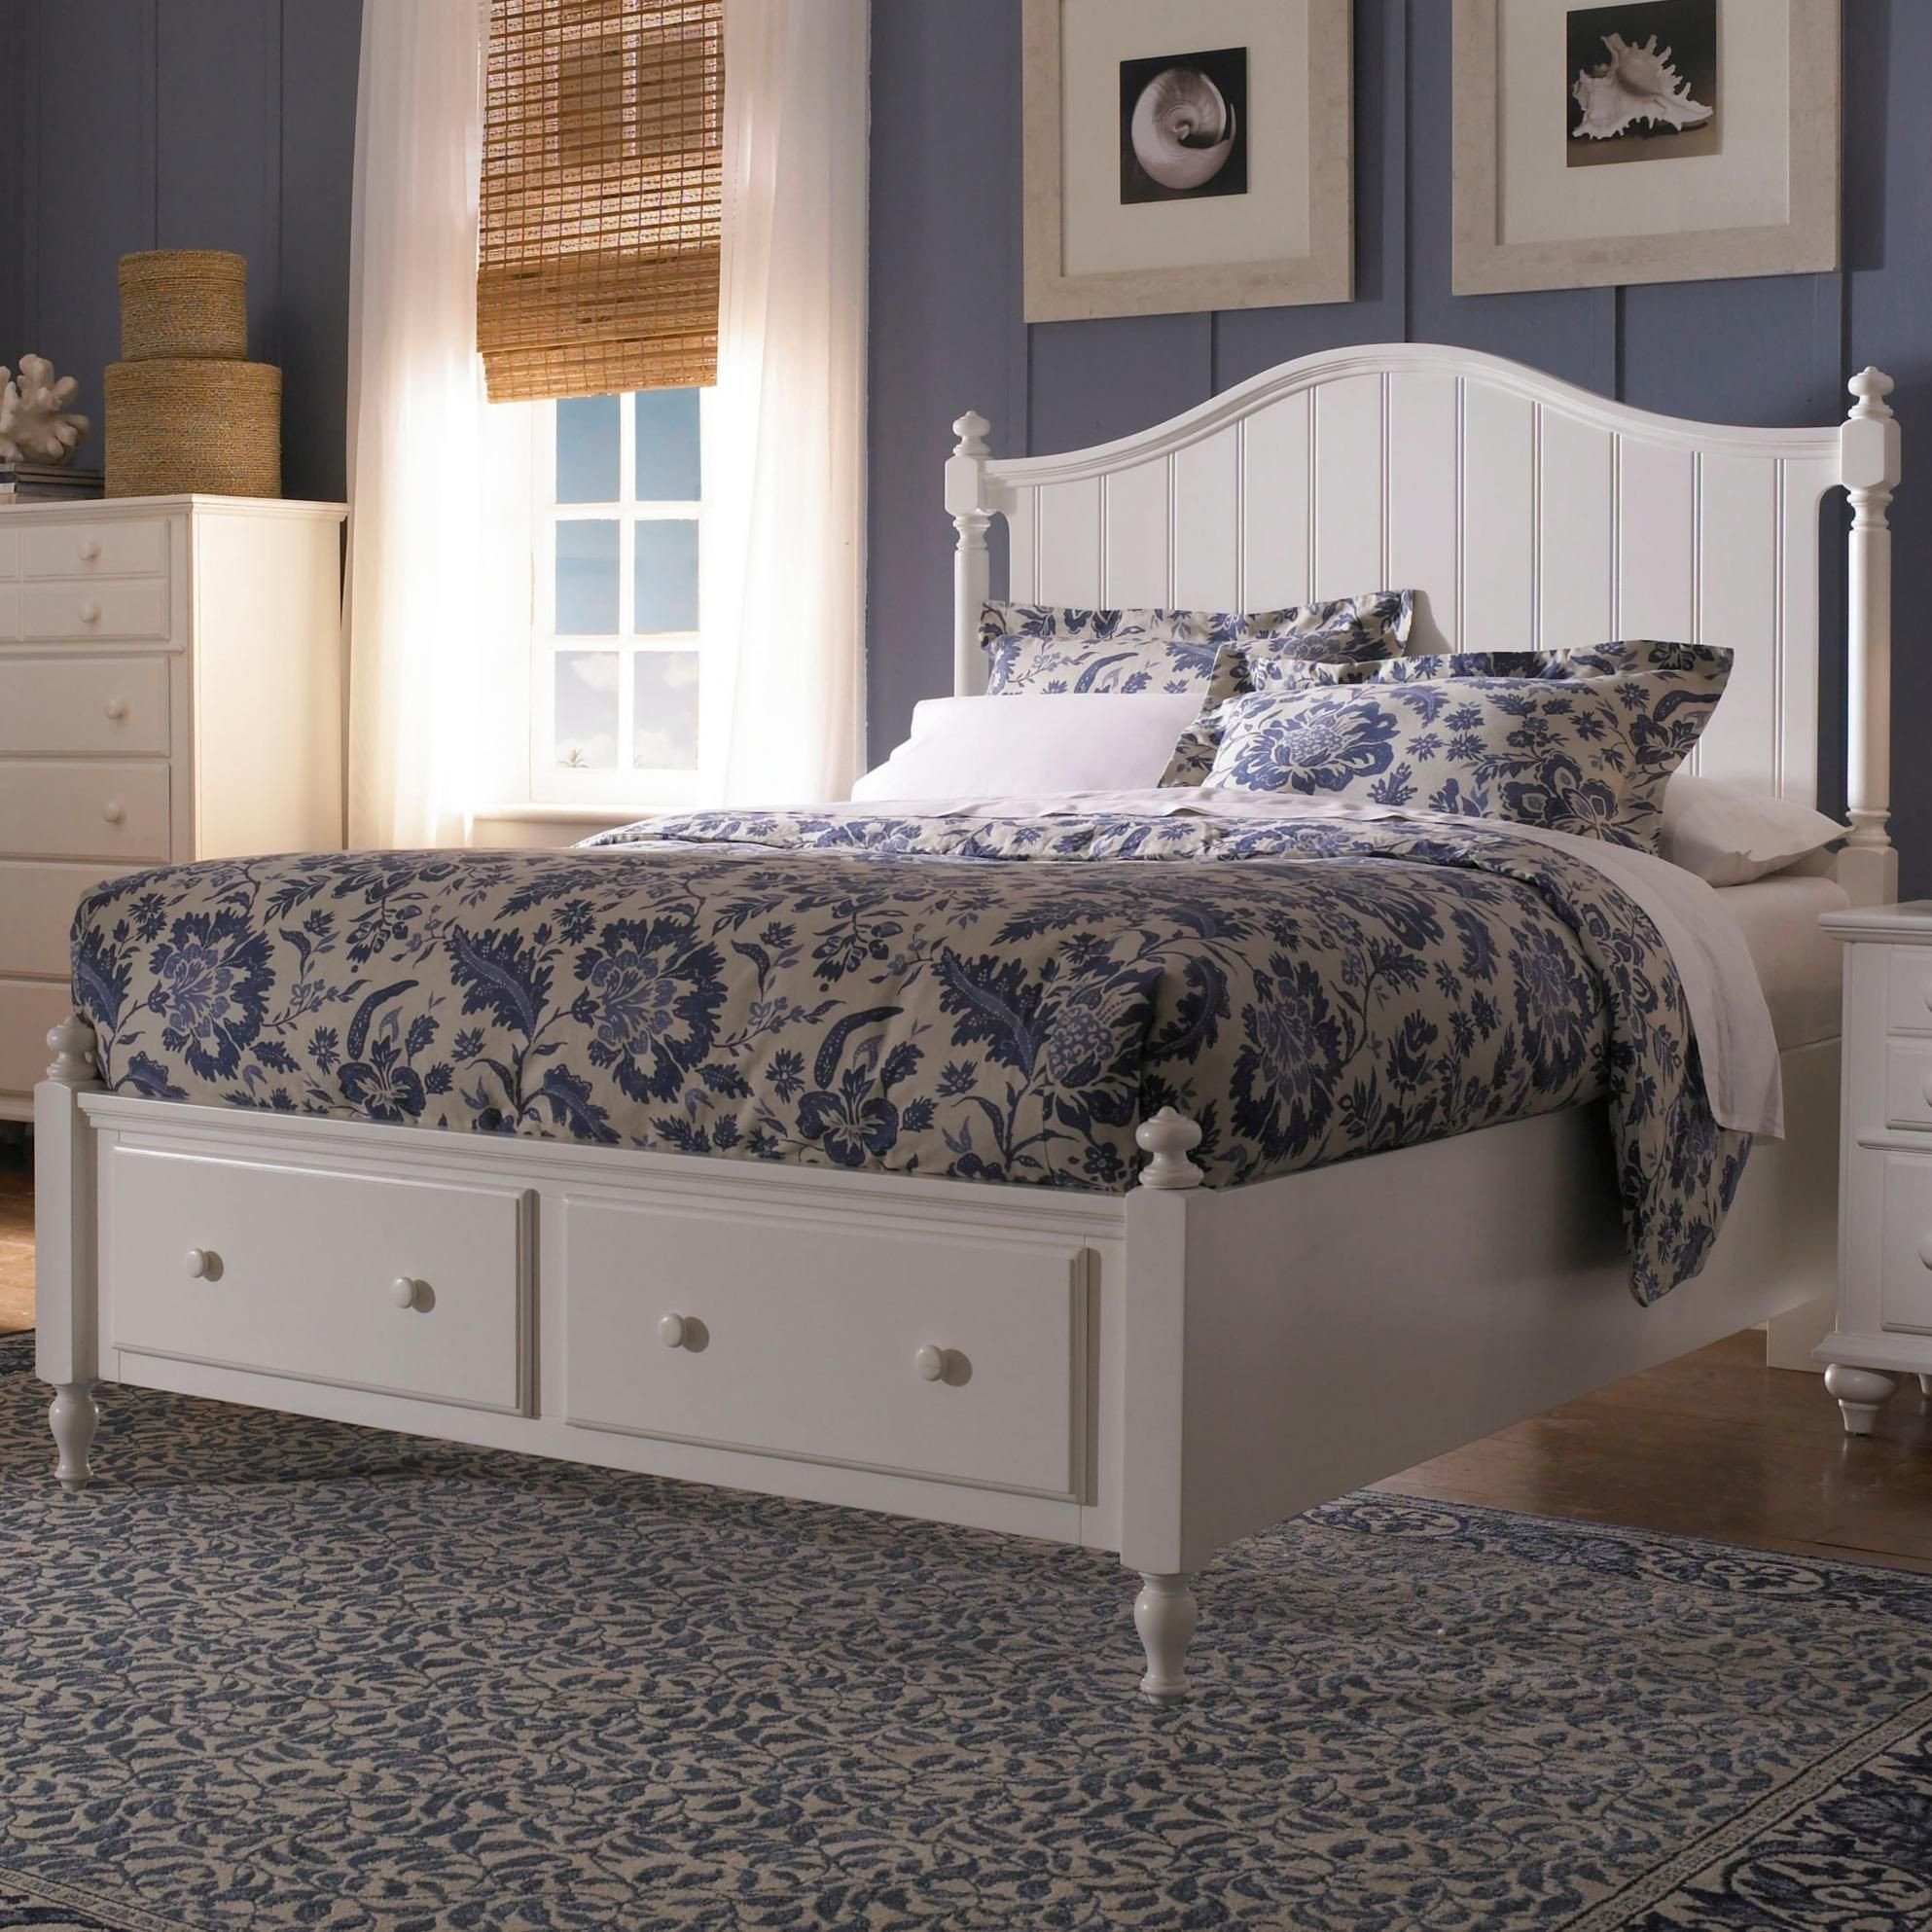 Broyhill King Bedroom Set Inspirational Hayden Place Queen Headboard and Storage Footboard Bed by